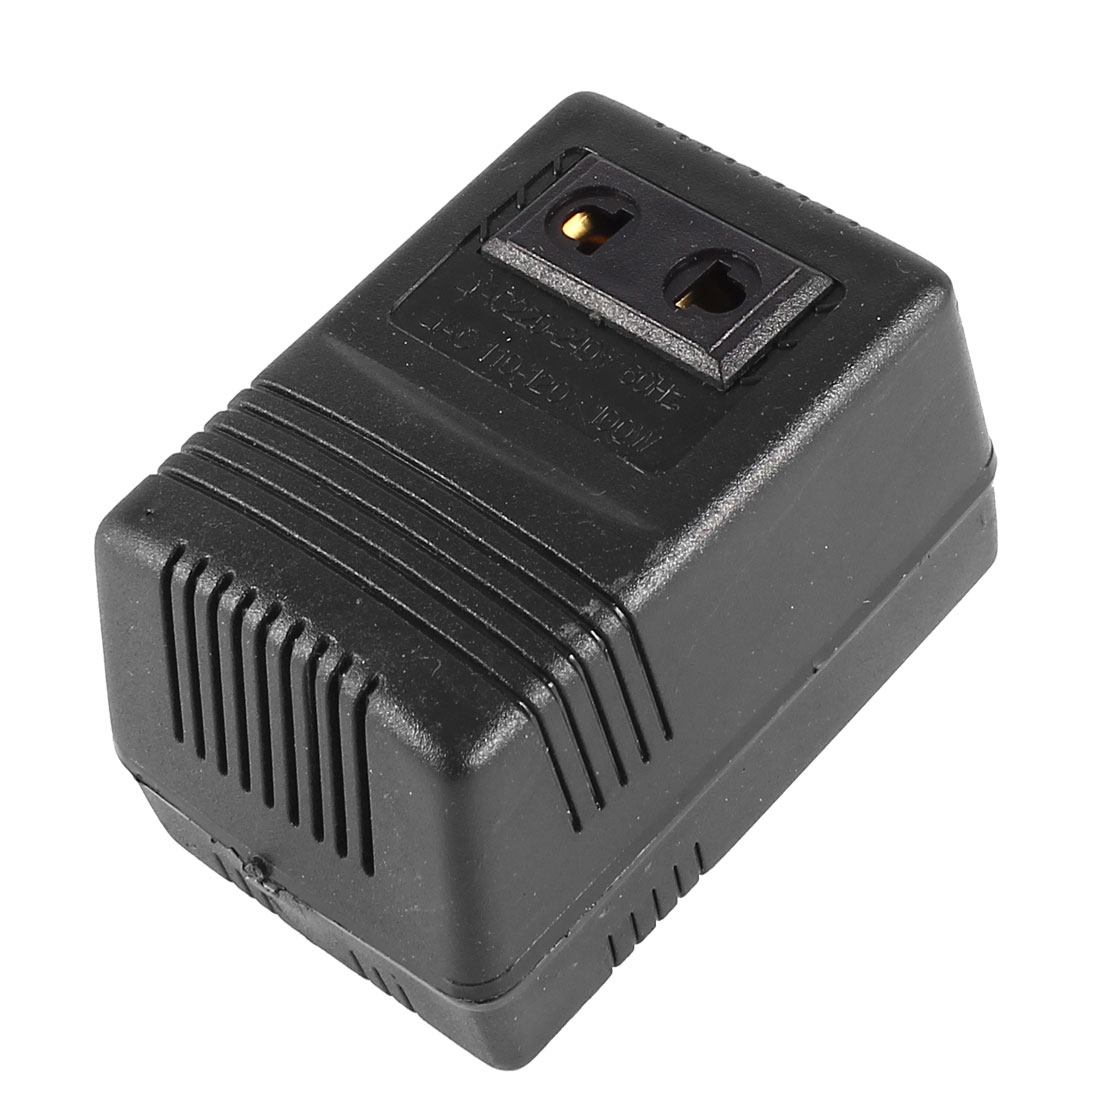 US Plug AC 220-240V to 110-120V Voltage Converter Transformer Power Adapter 100W